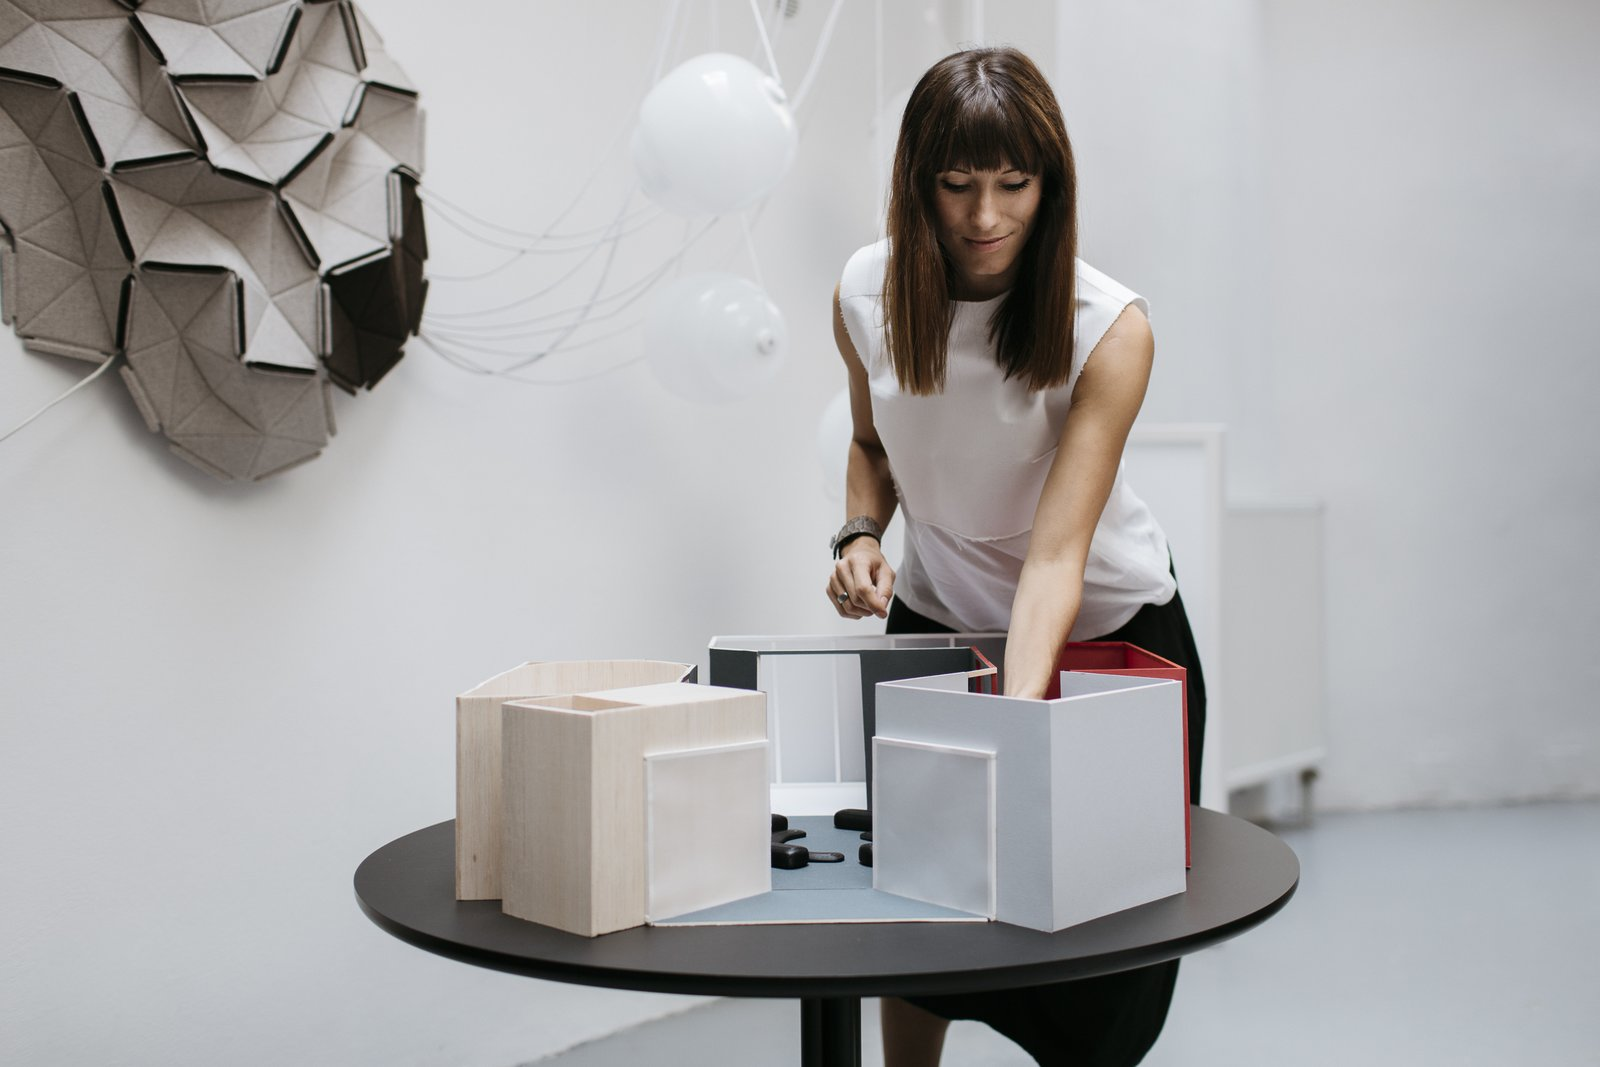 Q&A: Lucie Koldova Talks About Her Das Haus Concept For imm Cologne